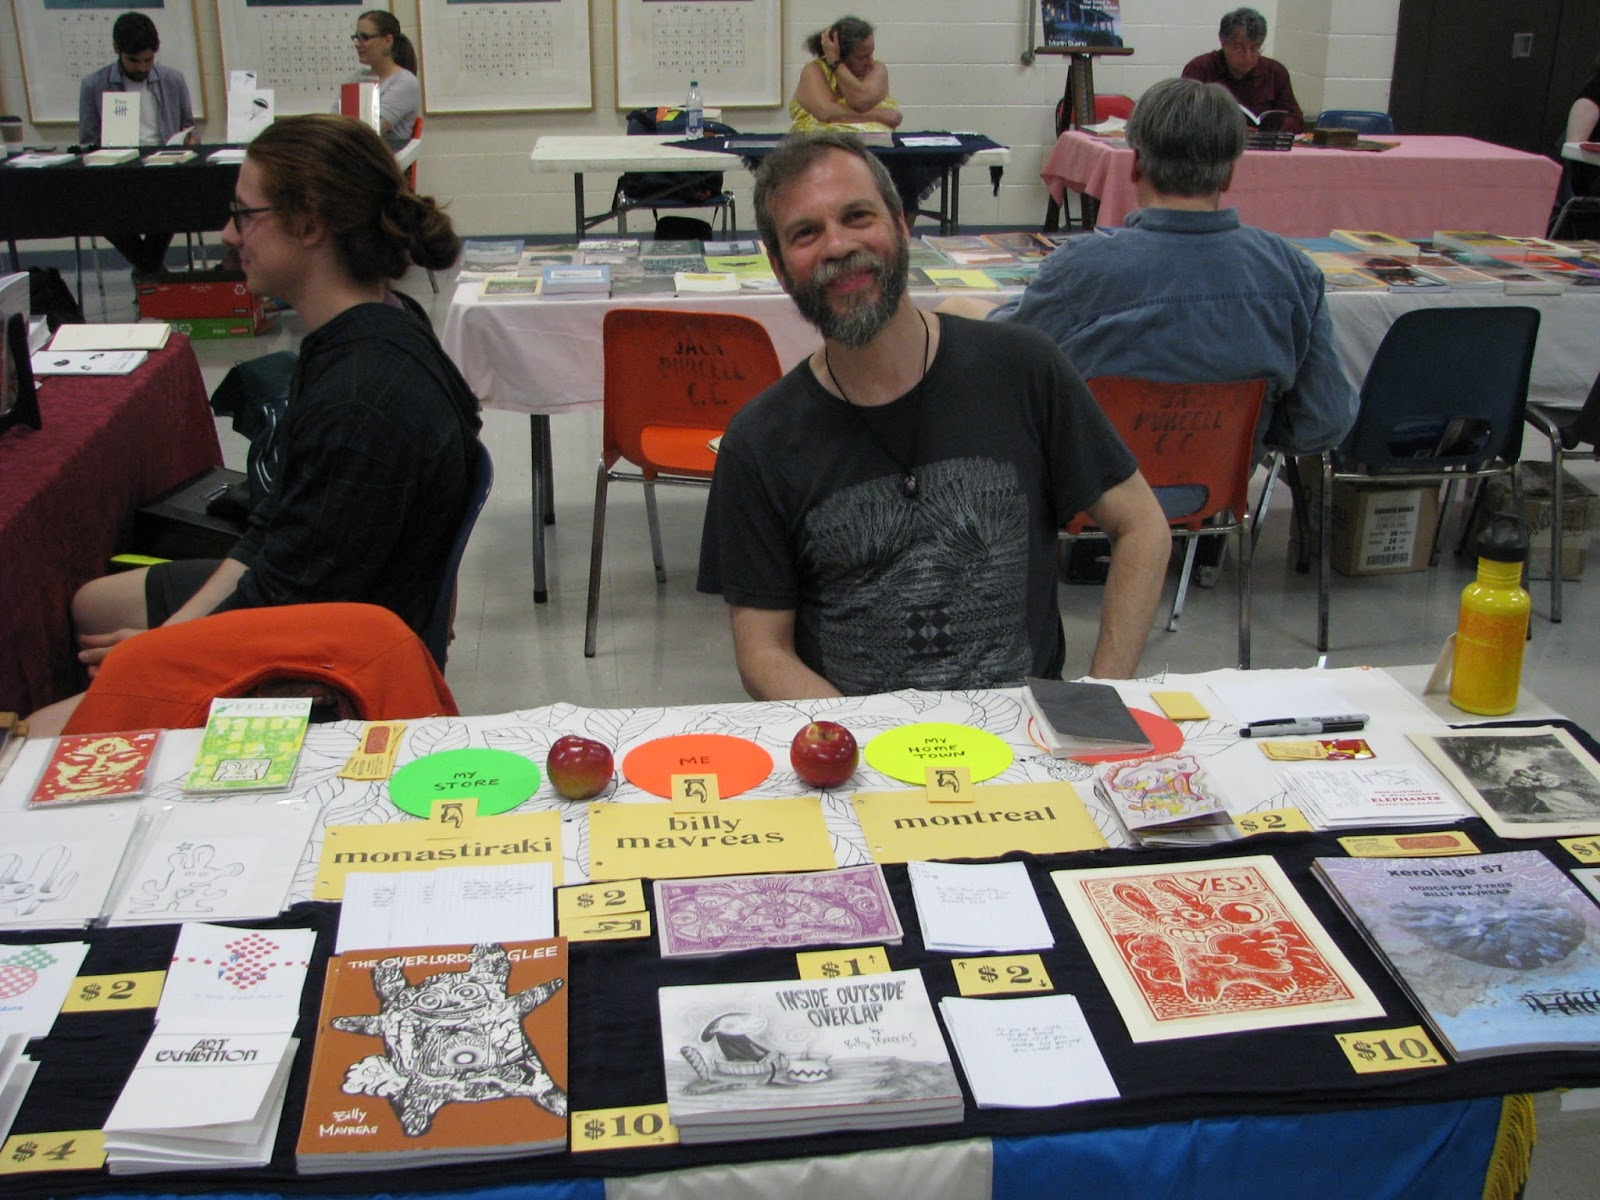 Pop Up Book Fair Montreal Rob Mclennan S Blog Ongoing Notes The Ottawa Small Press